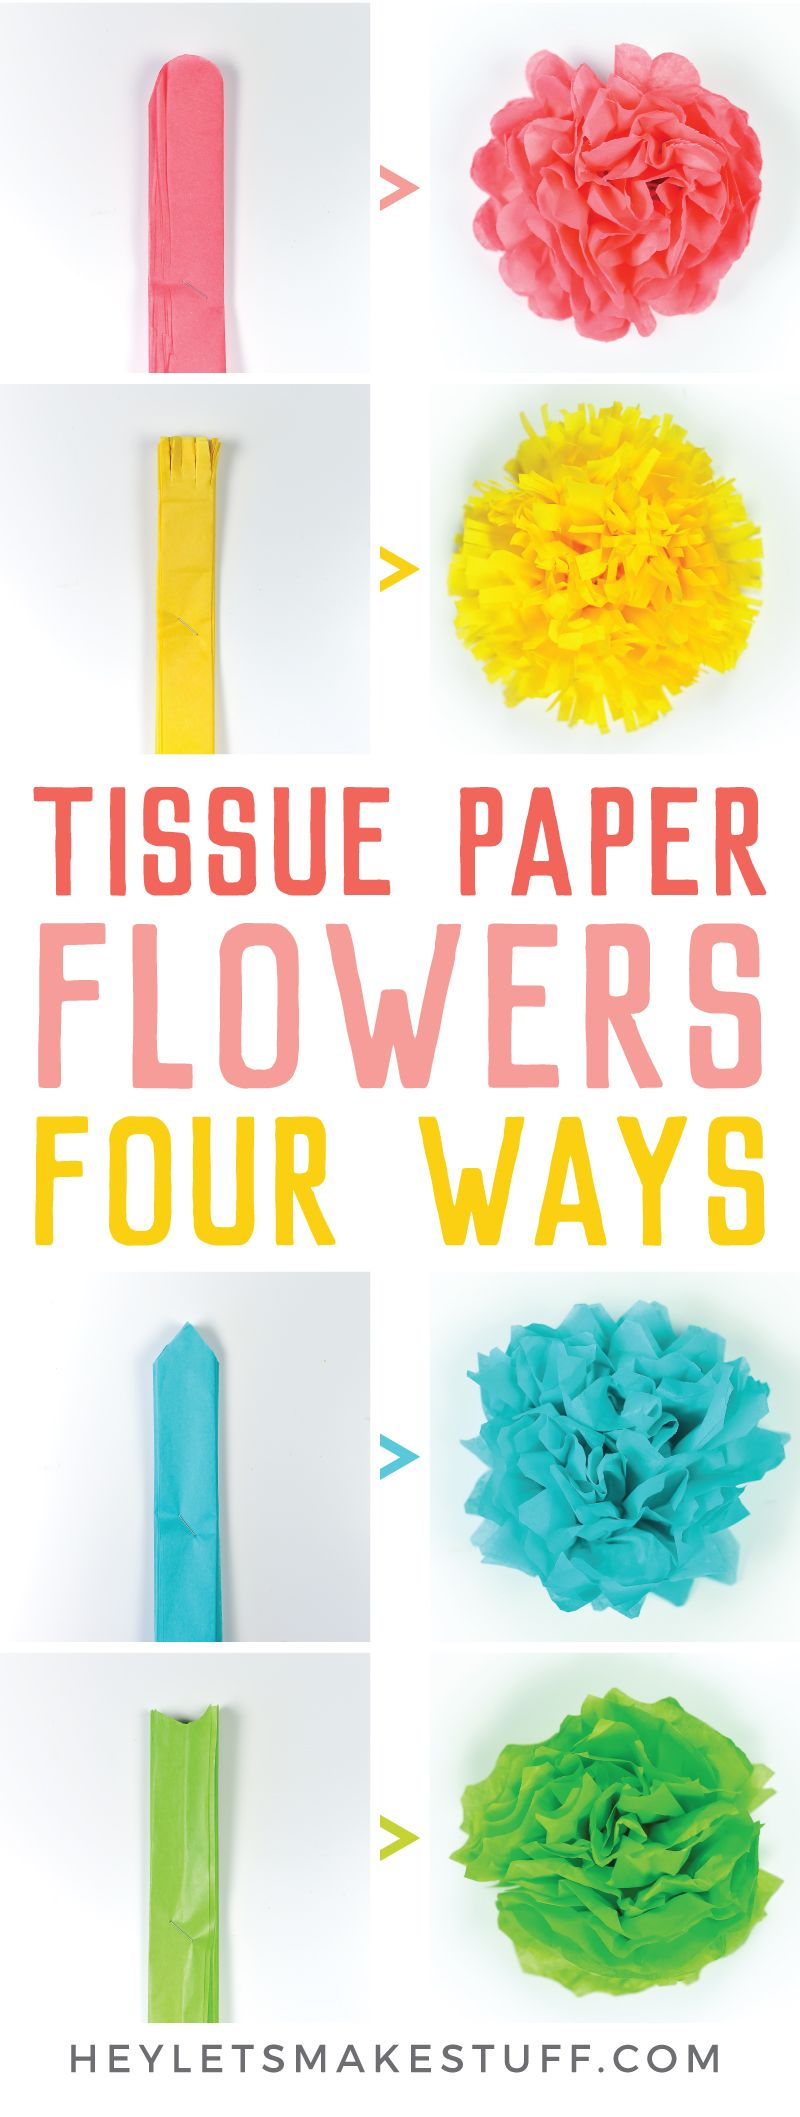 How to Make Tissue Paper Flowers Four Ways images